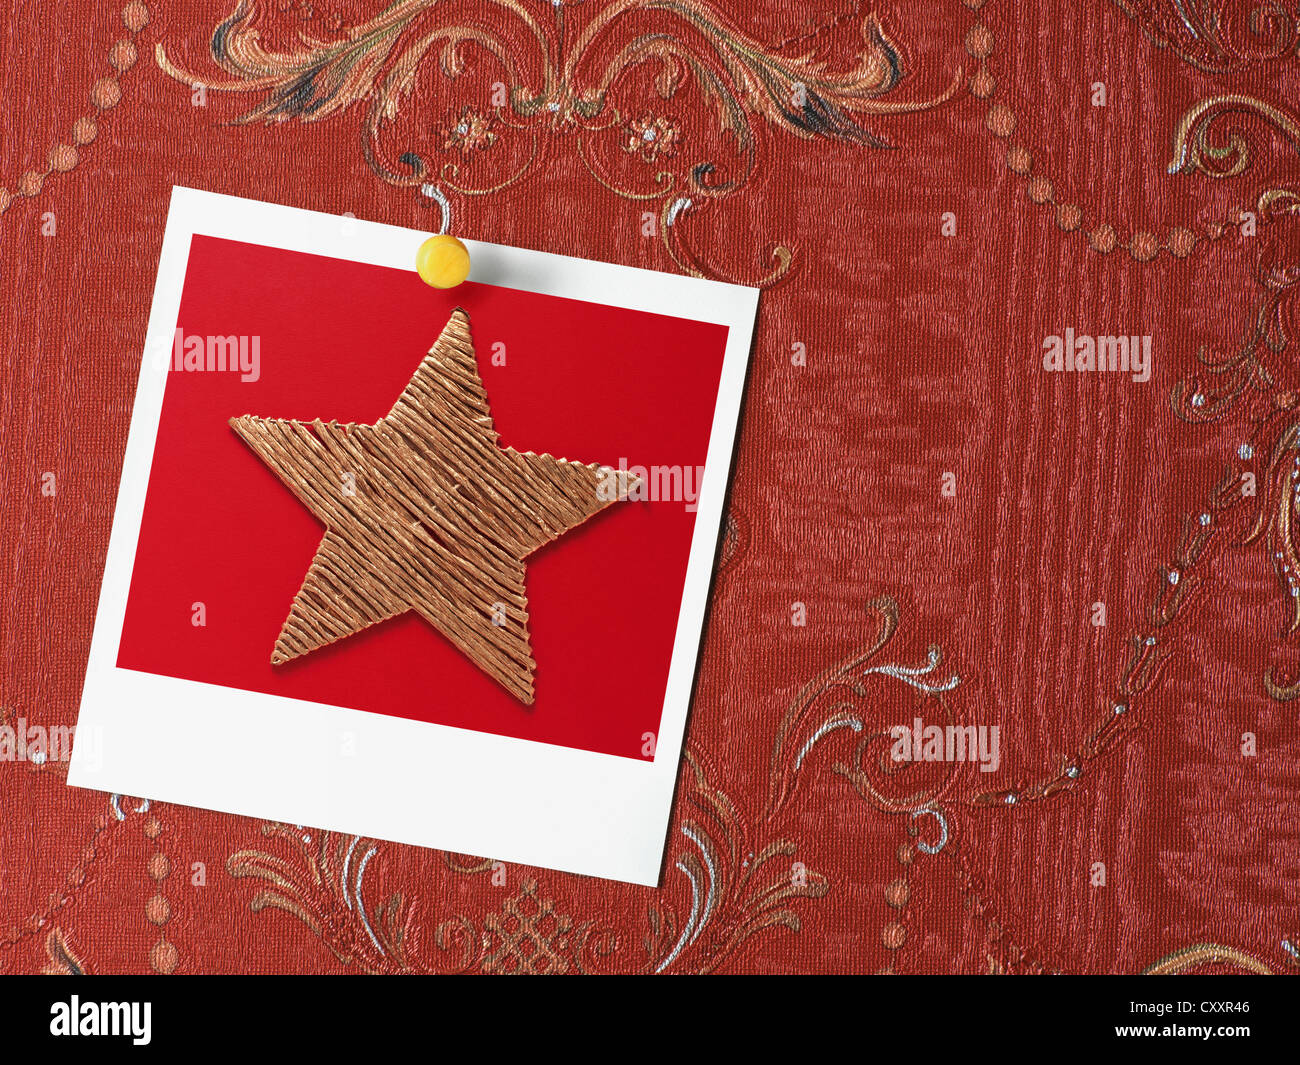 Polaroid photo of a Christmas star pinned on red Baroque wallpaper - Stock Image